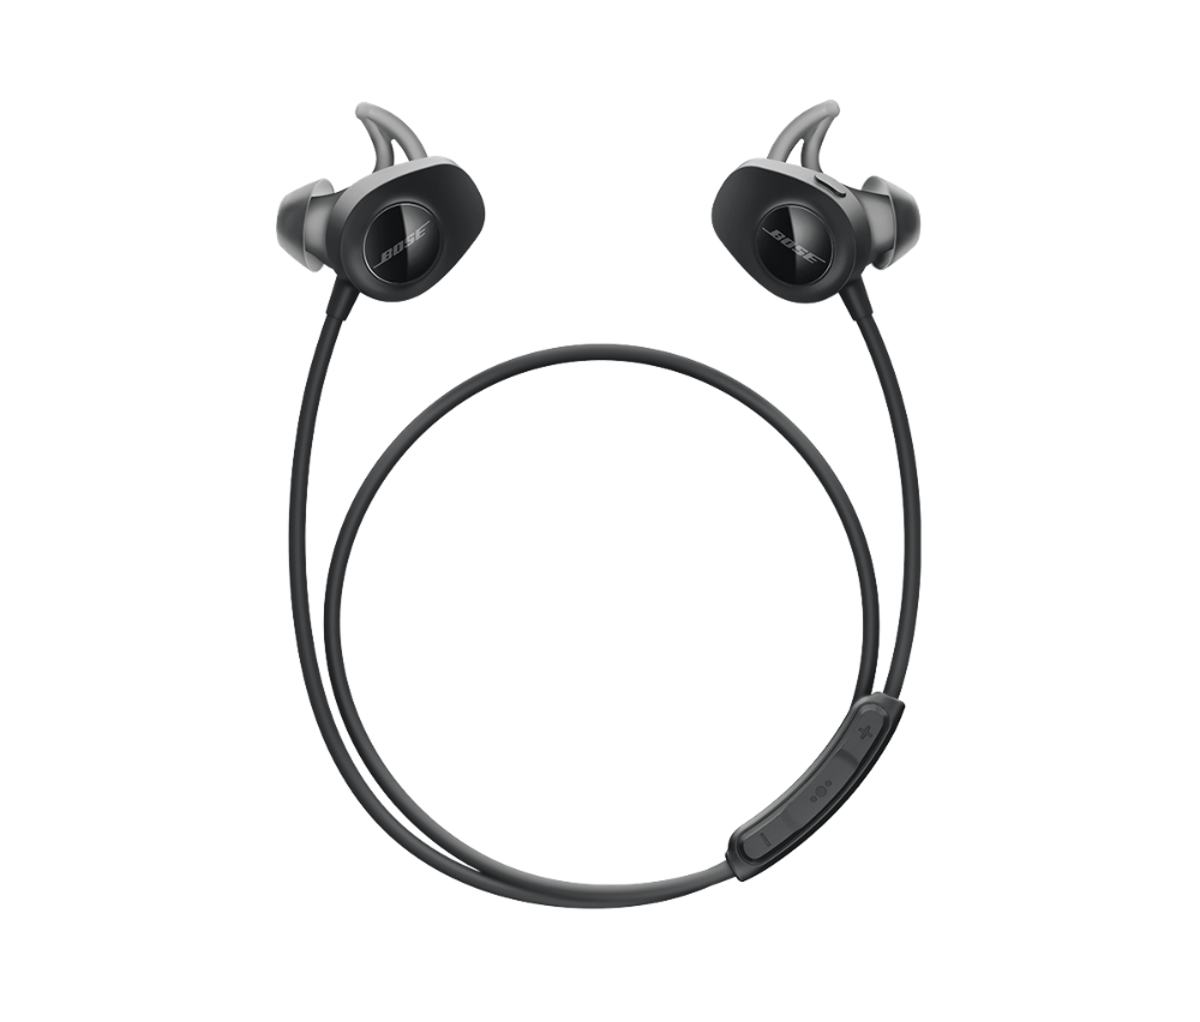 bose-introduces-4-new-wireless-headphones-4.png